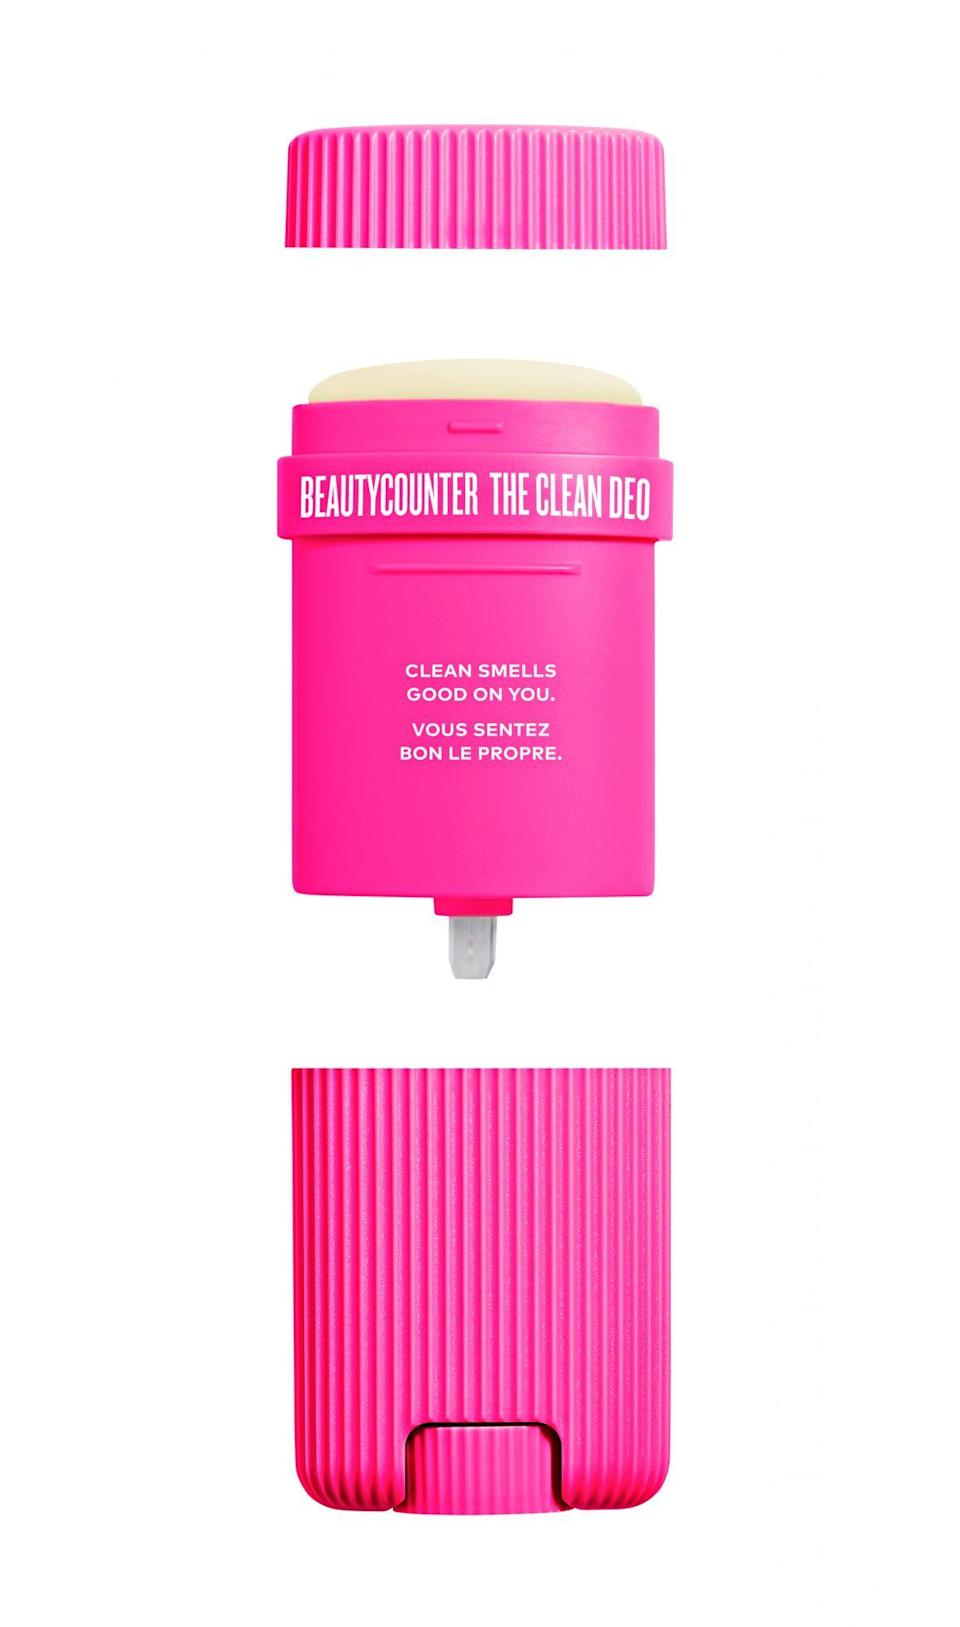 "<p>Swap products in single-use packaging for ones that come in reusable containers. Companies are now making refillable versions of everything from mouthwash to this cruelty-free deodorant.</p> <p><strong>Buy It!</strong> Beautycounter the Clean Deo, $28; <a href=""https://www.beautycounter.com/product/clean-deo/variant-1760"" rel=""nofollow noopener"" target=""_blank"" data-ylk=""slk:beautycounter.com"" class=""link rapid-noclick-resp"">beautycounter.com</a></p>"